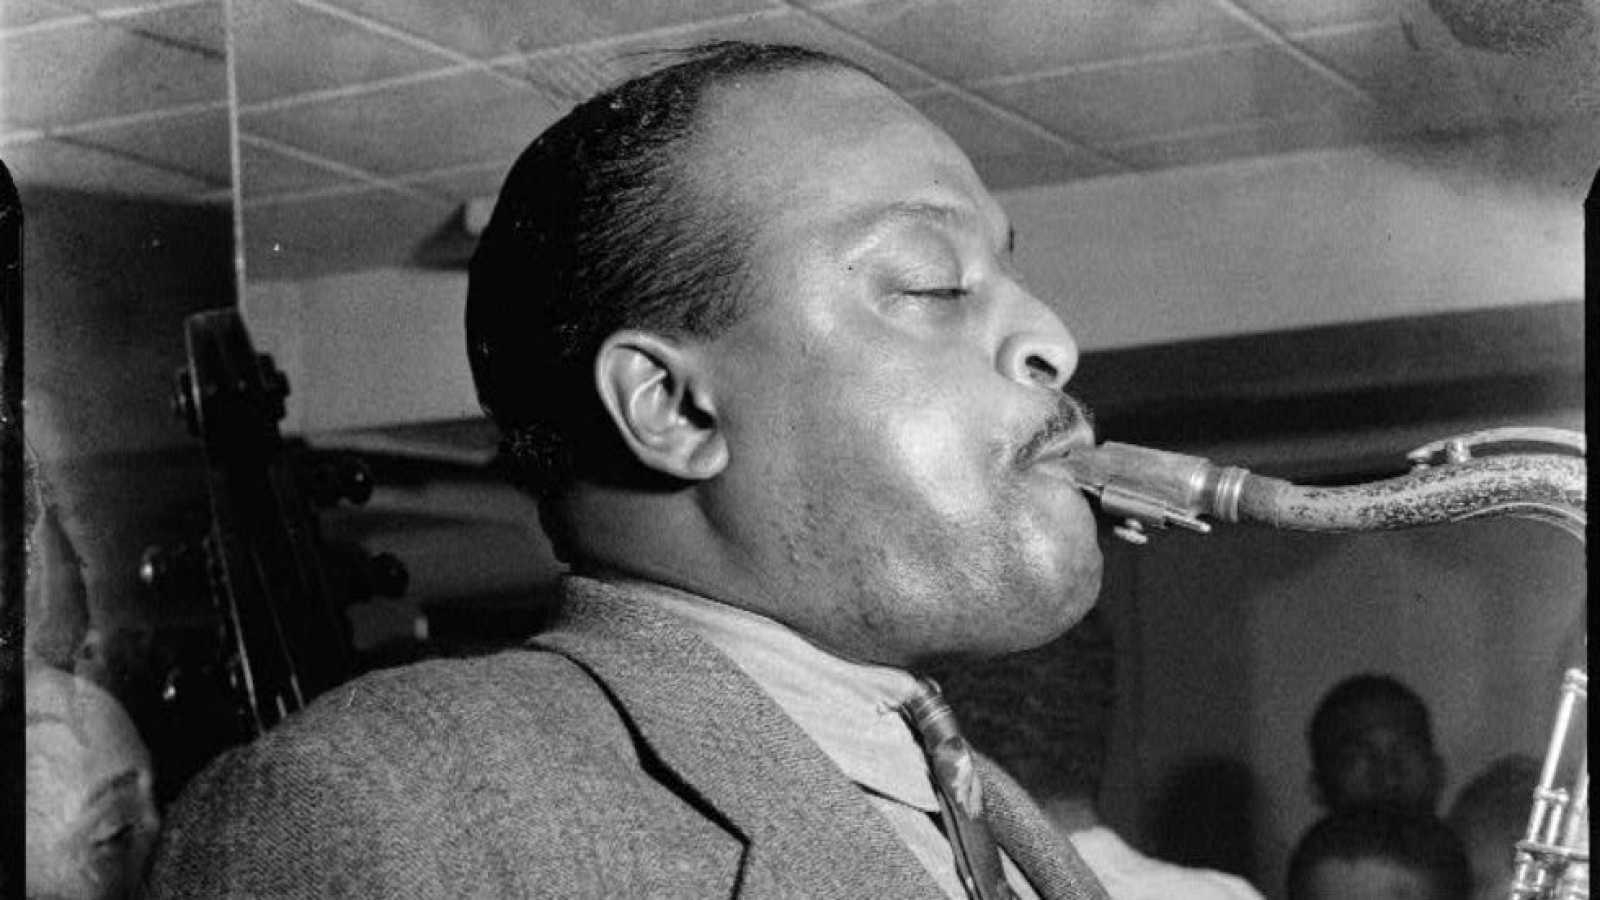 Jazz entre amigos - Ben Webster (Parte 1 de 2)